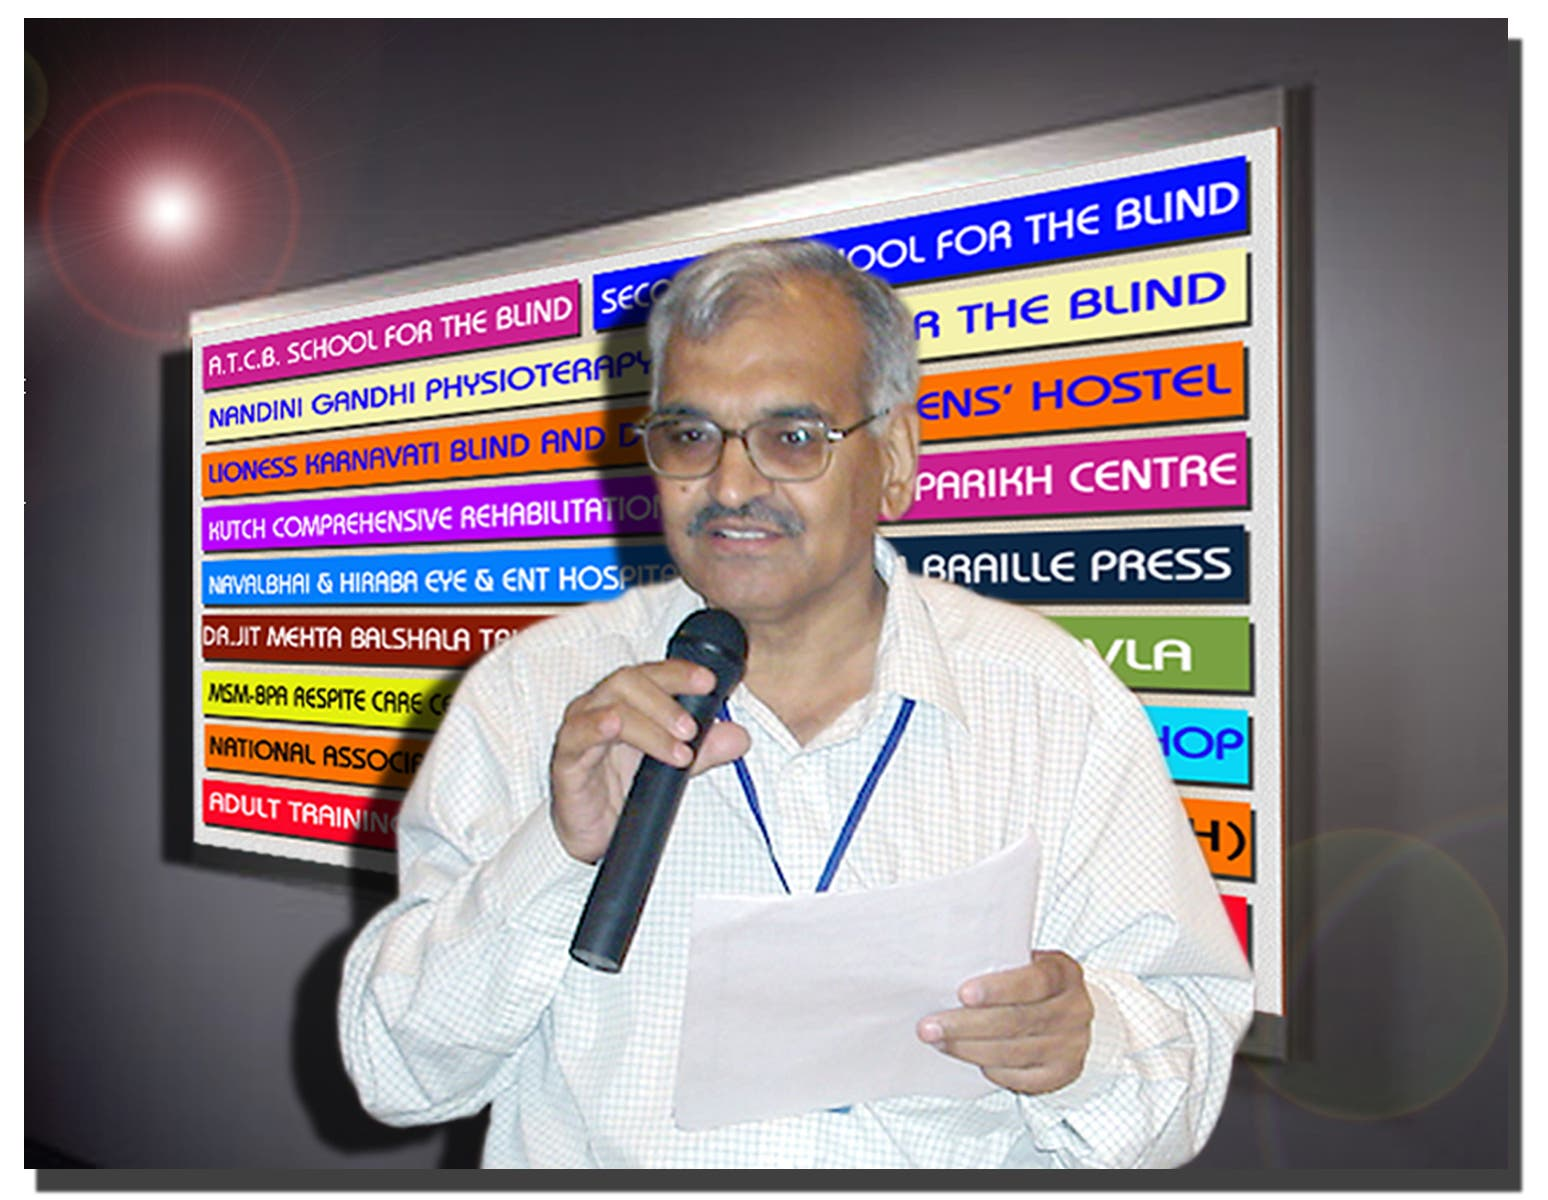 The Blind People's Association helmed by Dr Bhushan Punani has rehabilitated 500,000 handicapped people. (Supplied)